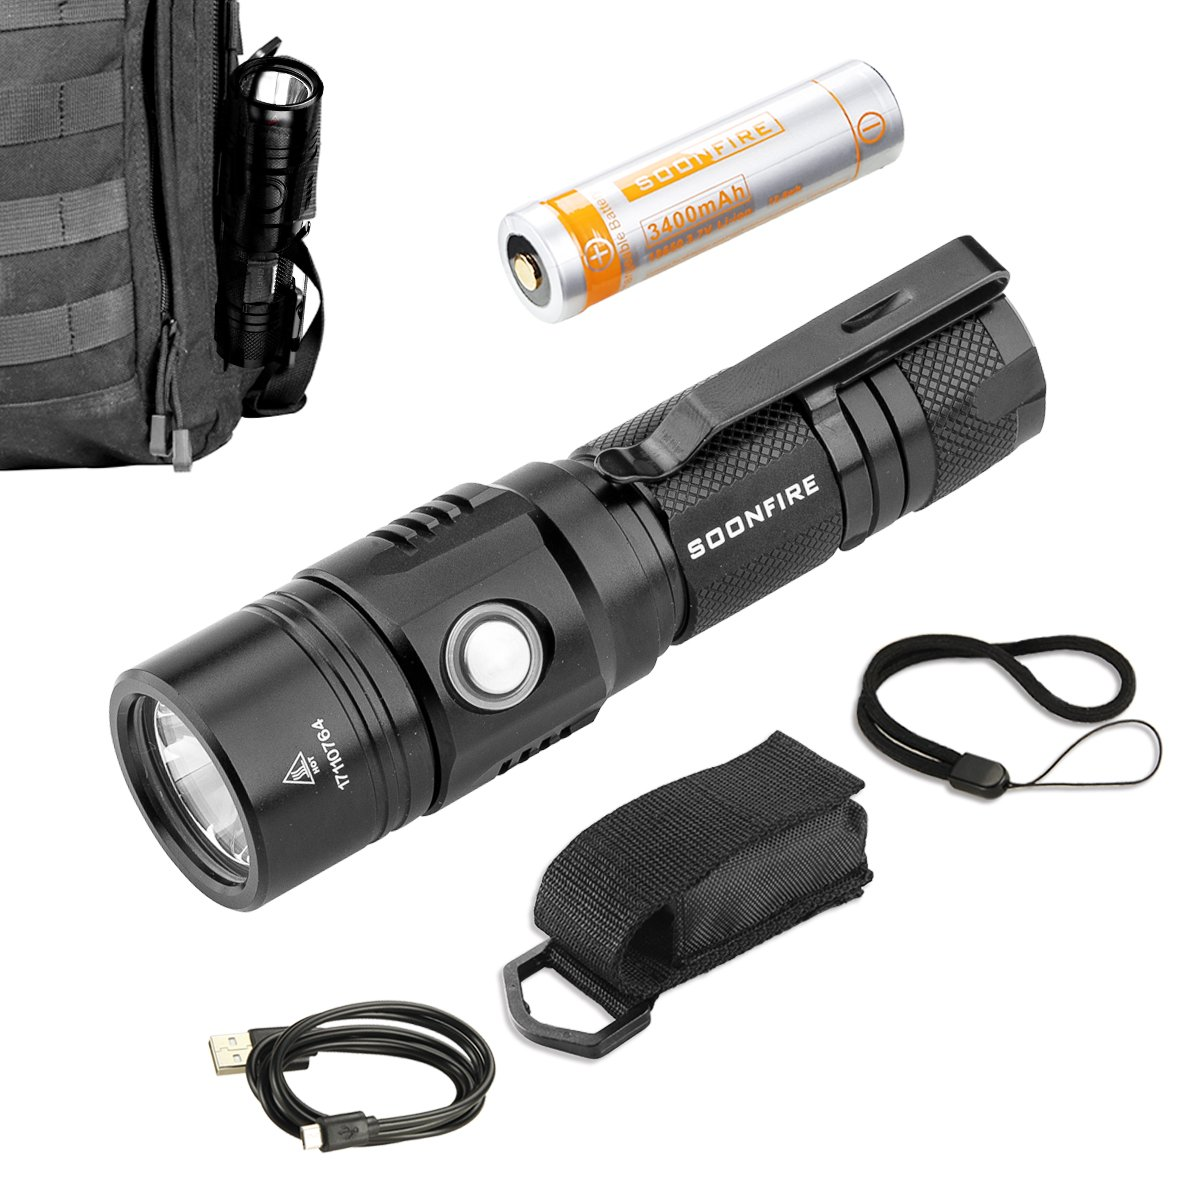 Cree XP-L LED Rechargeable Flashlight,Soonfire E07 USB Waterproof 1000 Lumen Compact EDC Flashlight with type 18650 3400mAh rechargeable Li-ion battery by soonfire (Image #5)